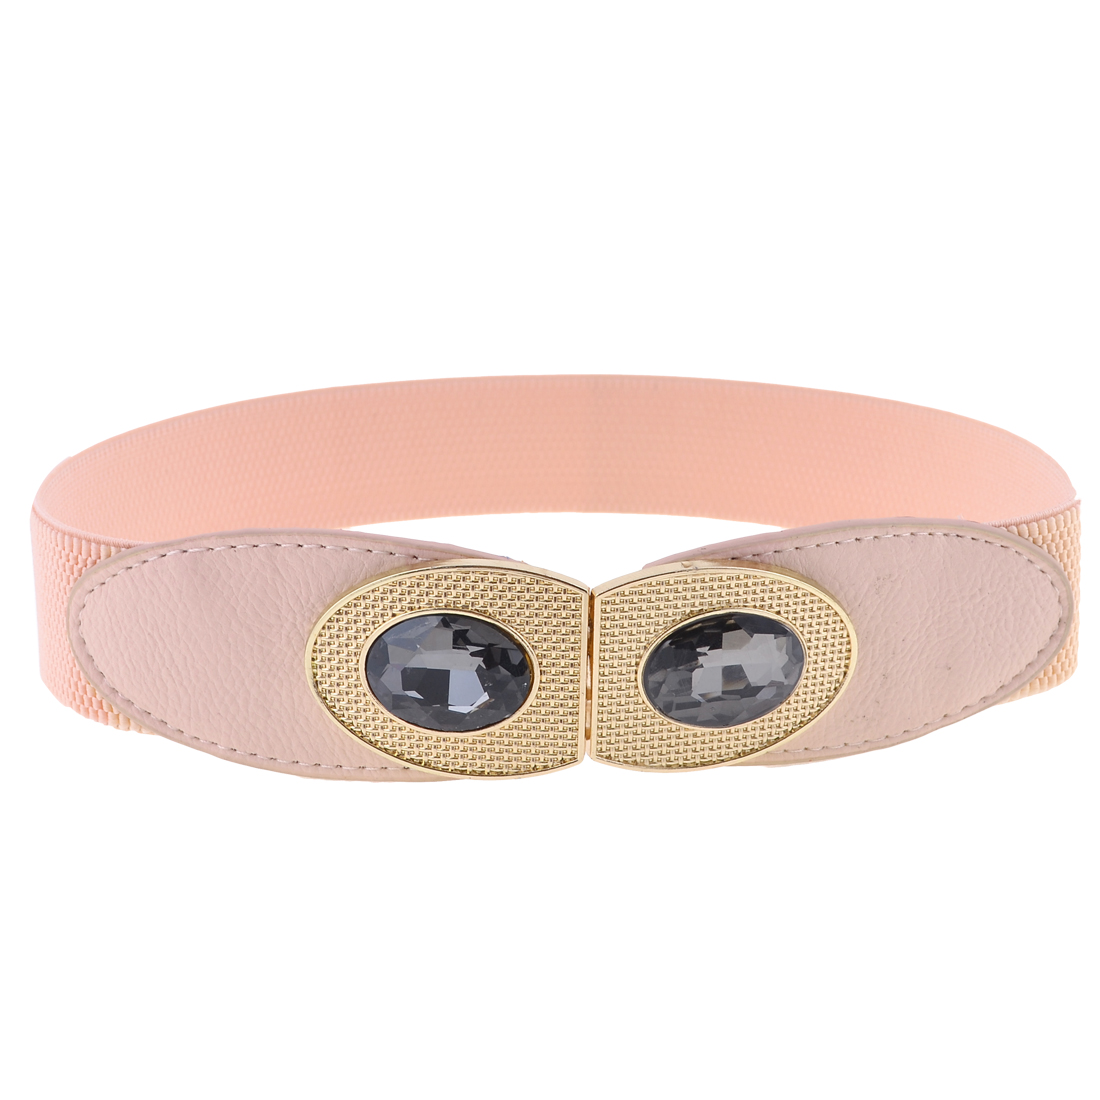 Lady Pink Faux Cystal Acent Eye Design Interlocking Buckle Stretchy Cinch Belt